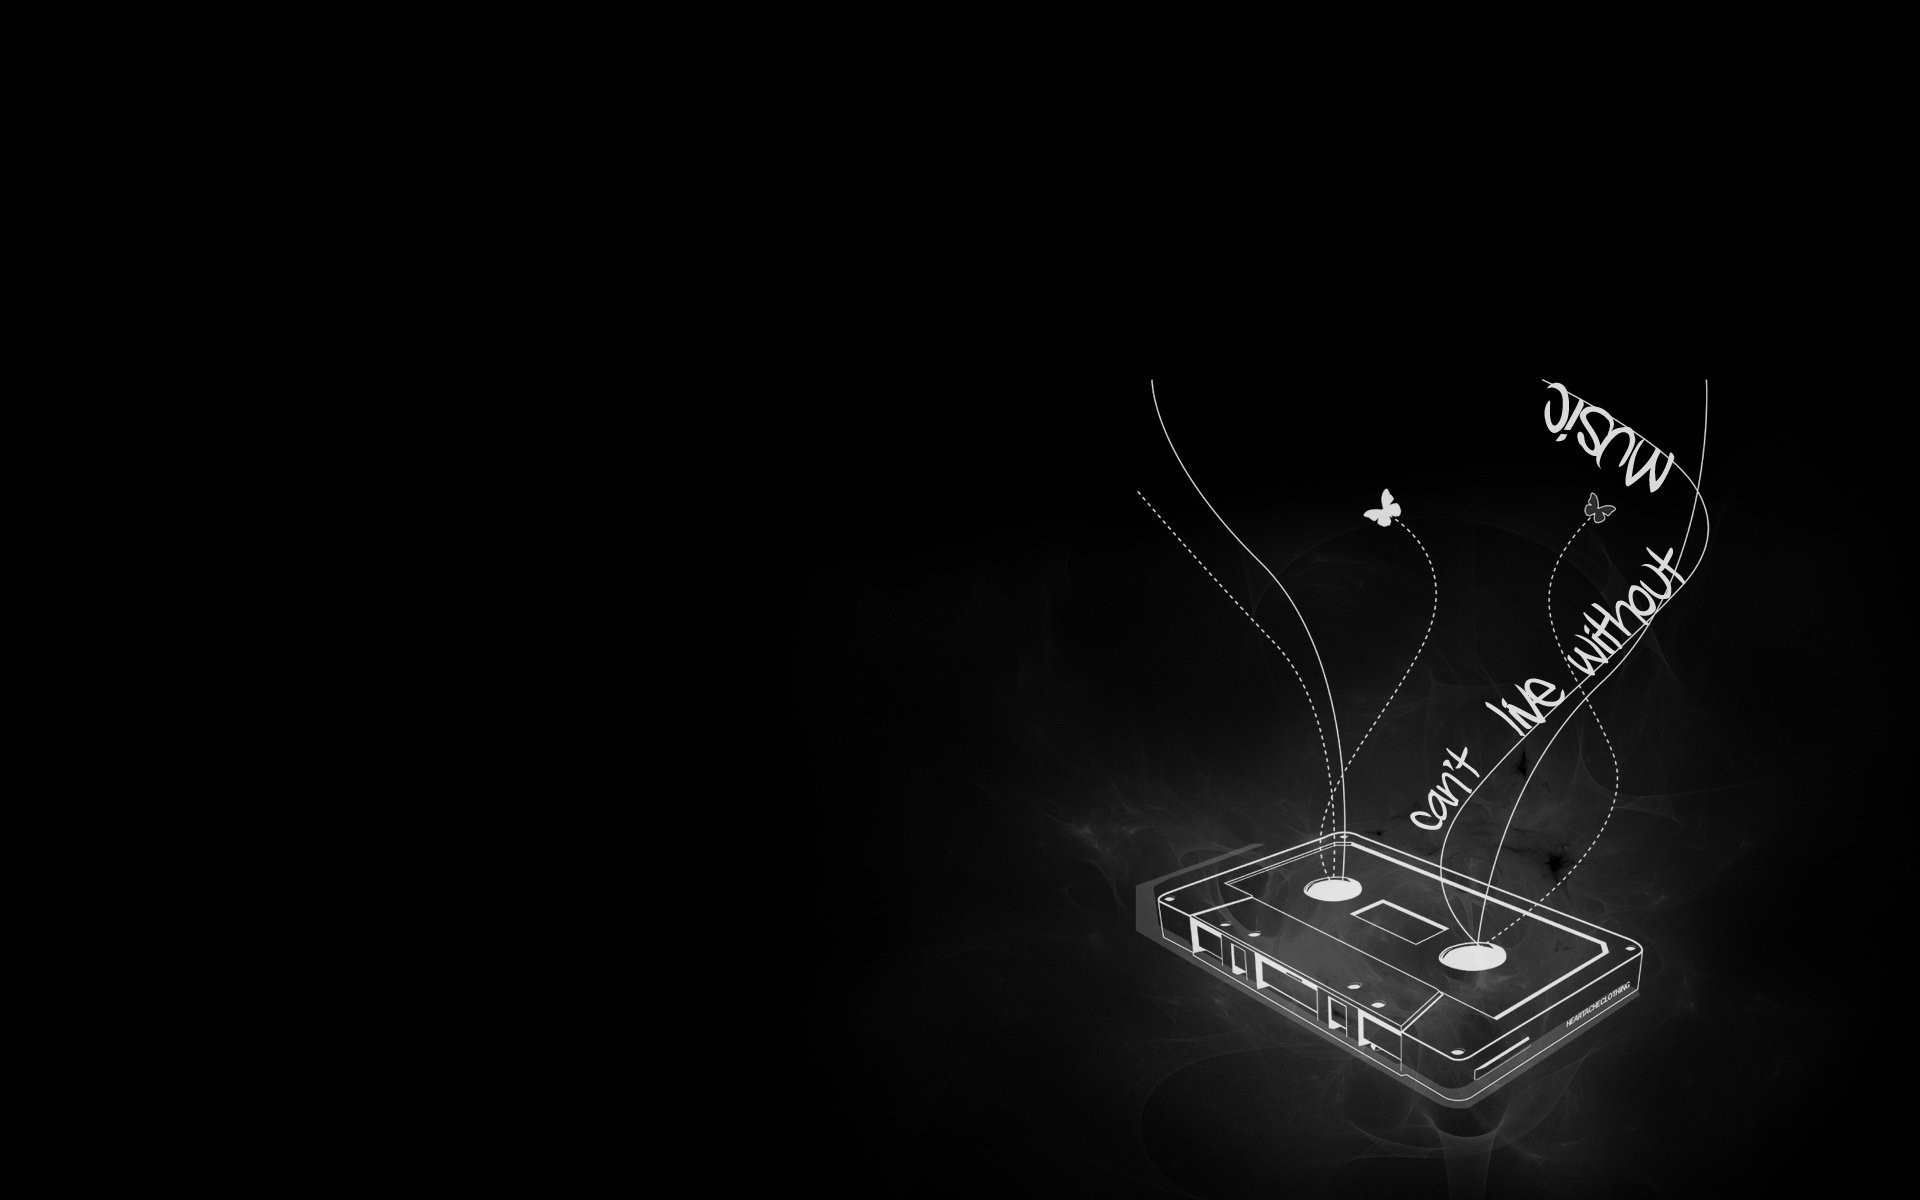 1920x1200 wallpaper.wiki-Music-Wallpaper-Abstract-Skilal-Headphones-PIC-